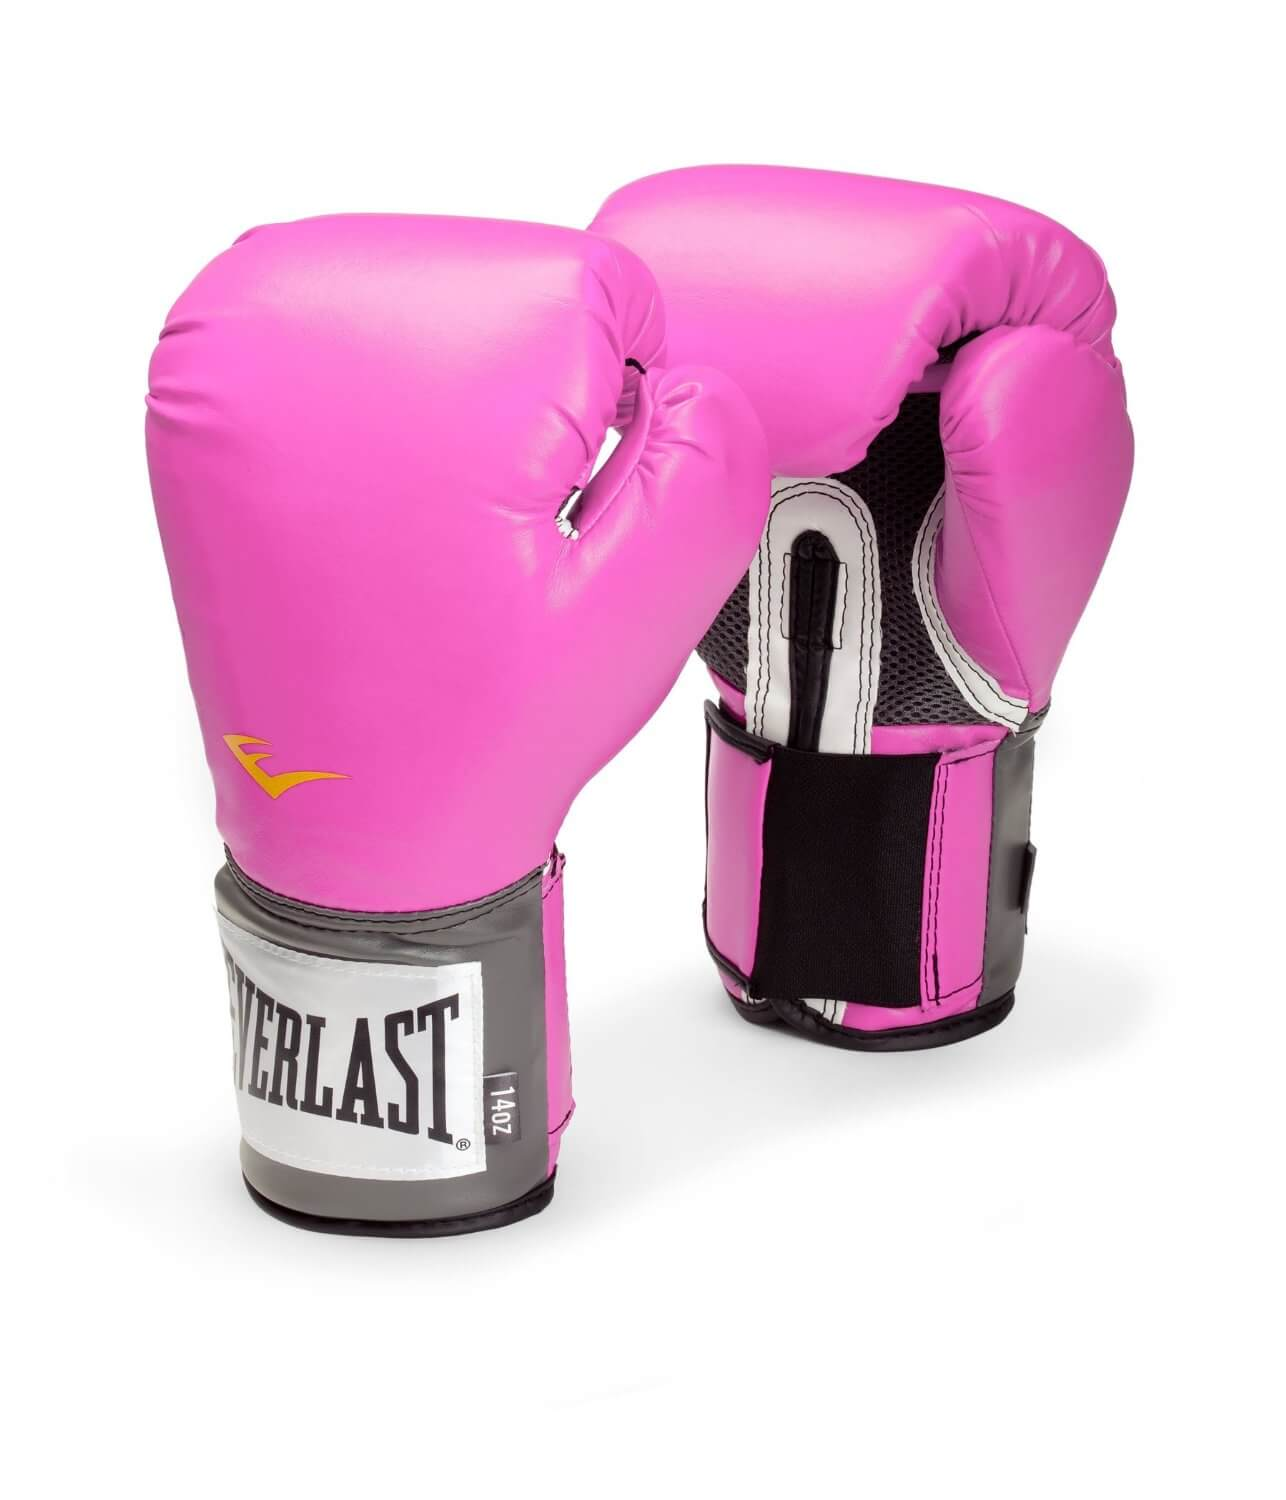 Everlast Pro Style Training Gloves Available in Multiple Sizes and Colors